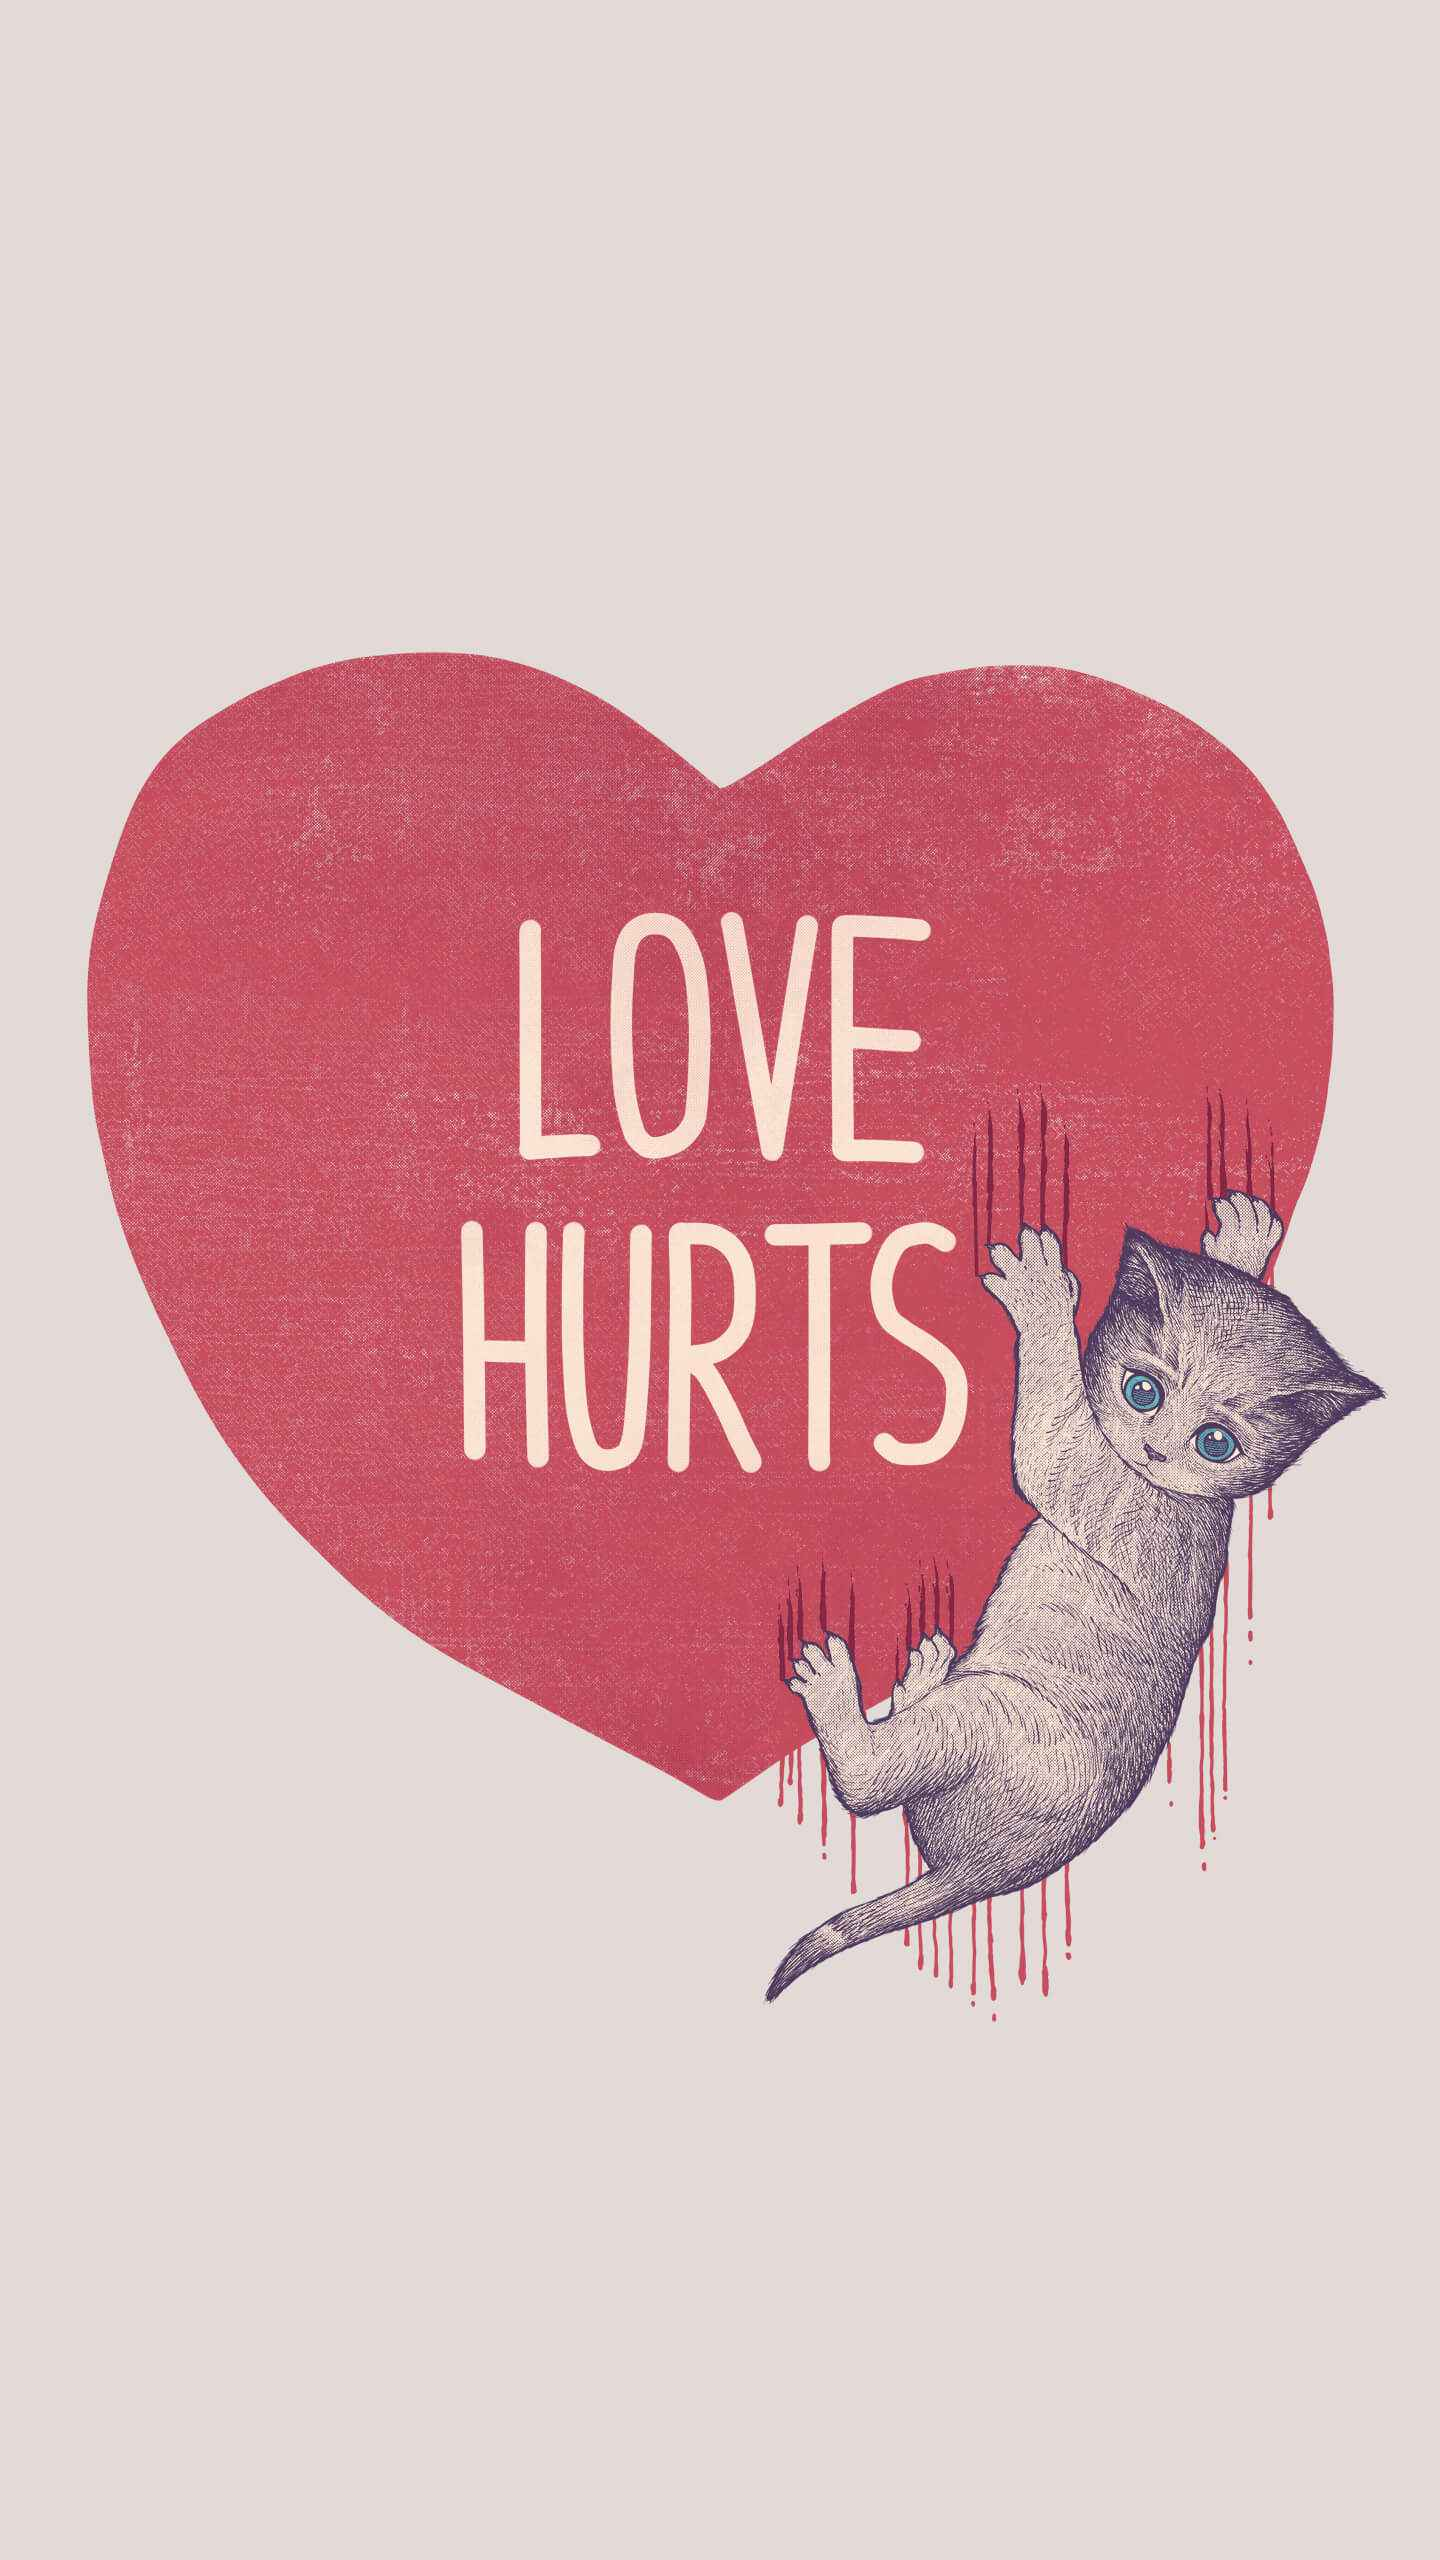 Emoji Quotes Wallpaper Love Hurts Iphone Wallpaper Iphone Wallpapers